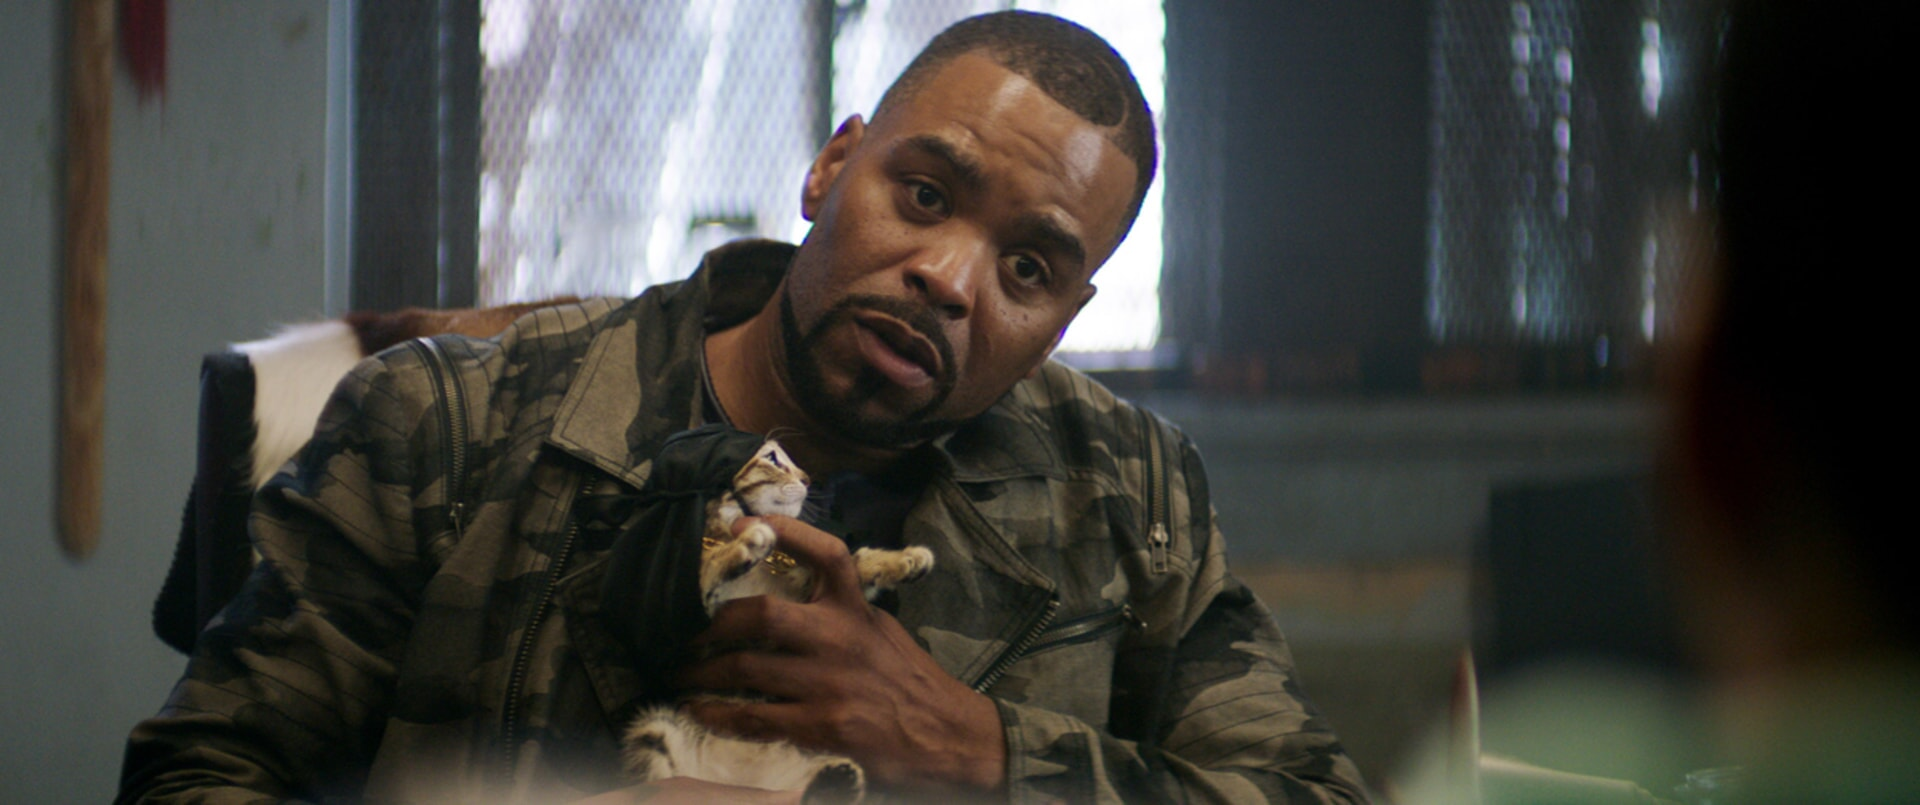 METHOD MAN as Cheddar holding Keanu the kitten who is wearing a black headwrap and gold chain